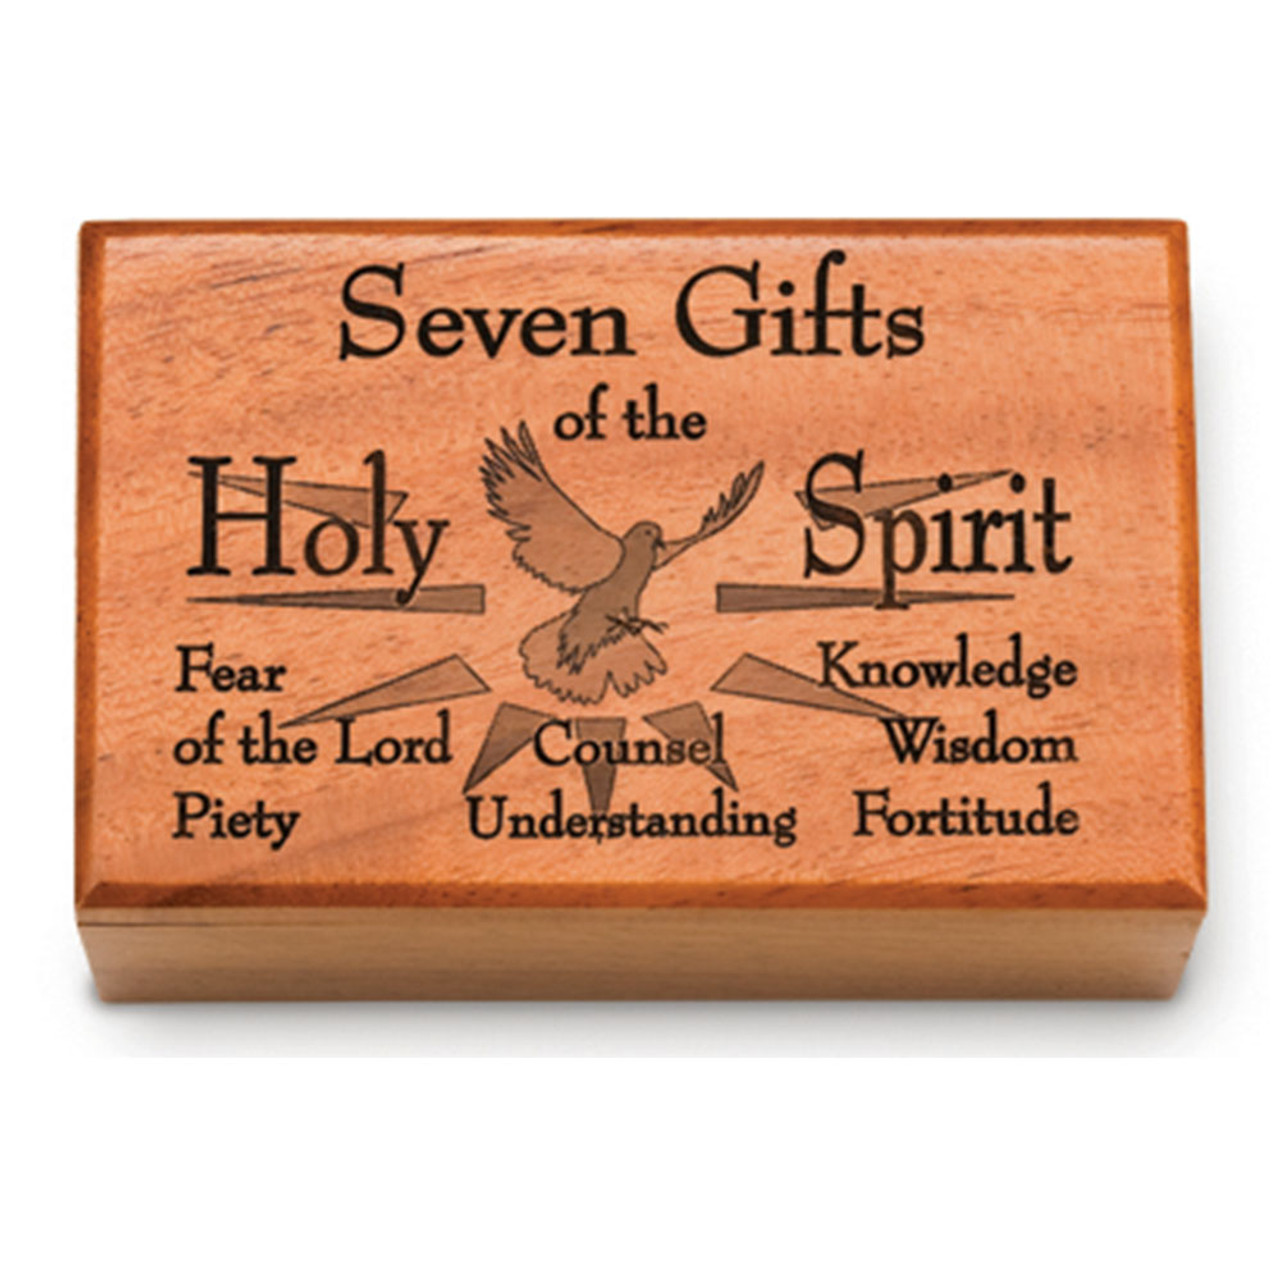 7 Gifts of the Spirit Wooden Box